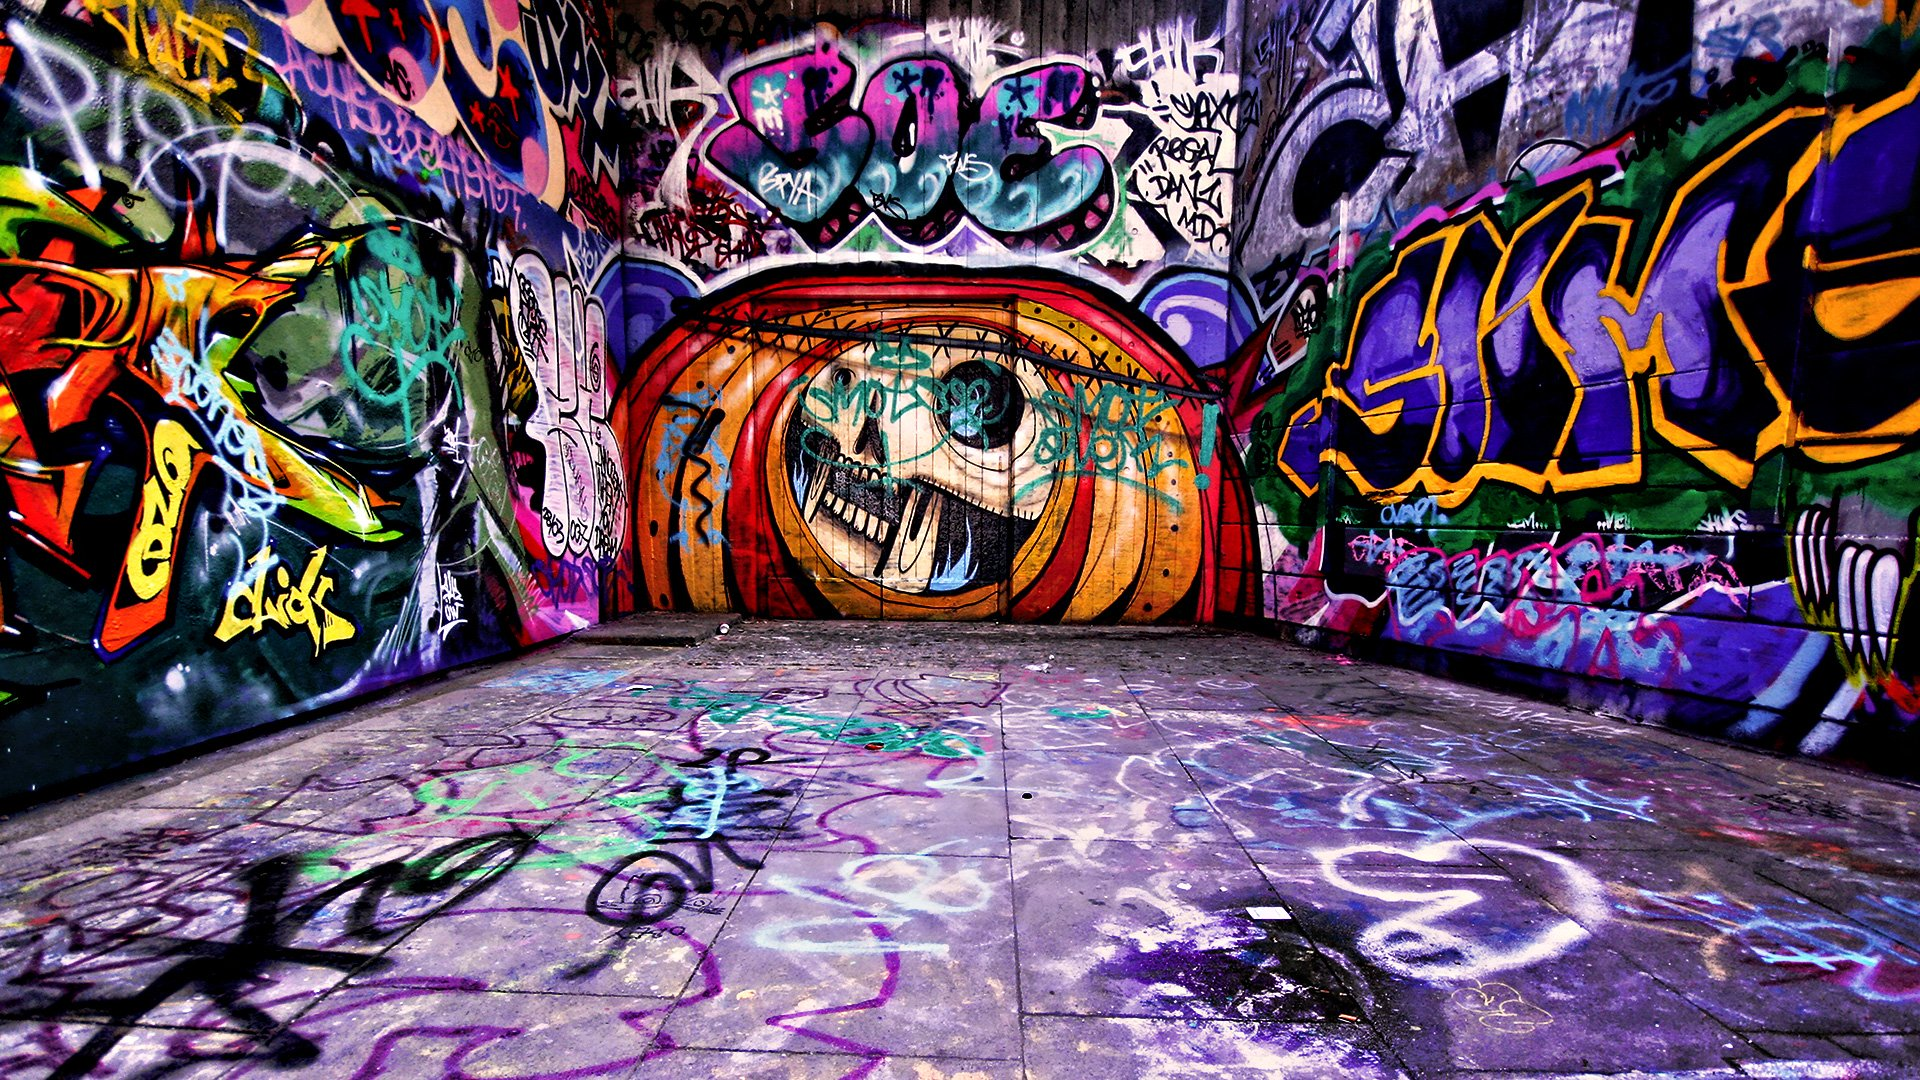 graffiti wallpaper 8 1920x1080